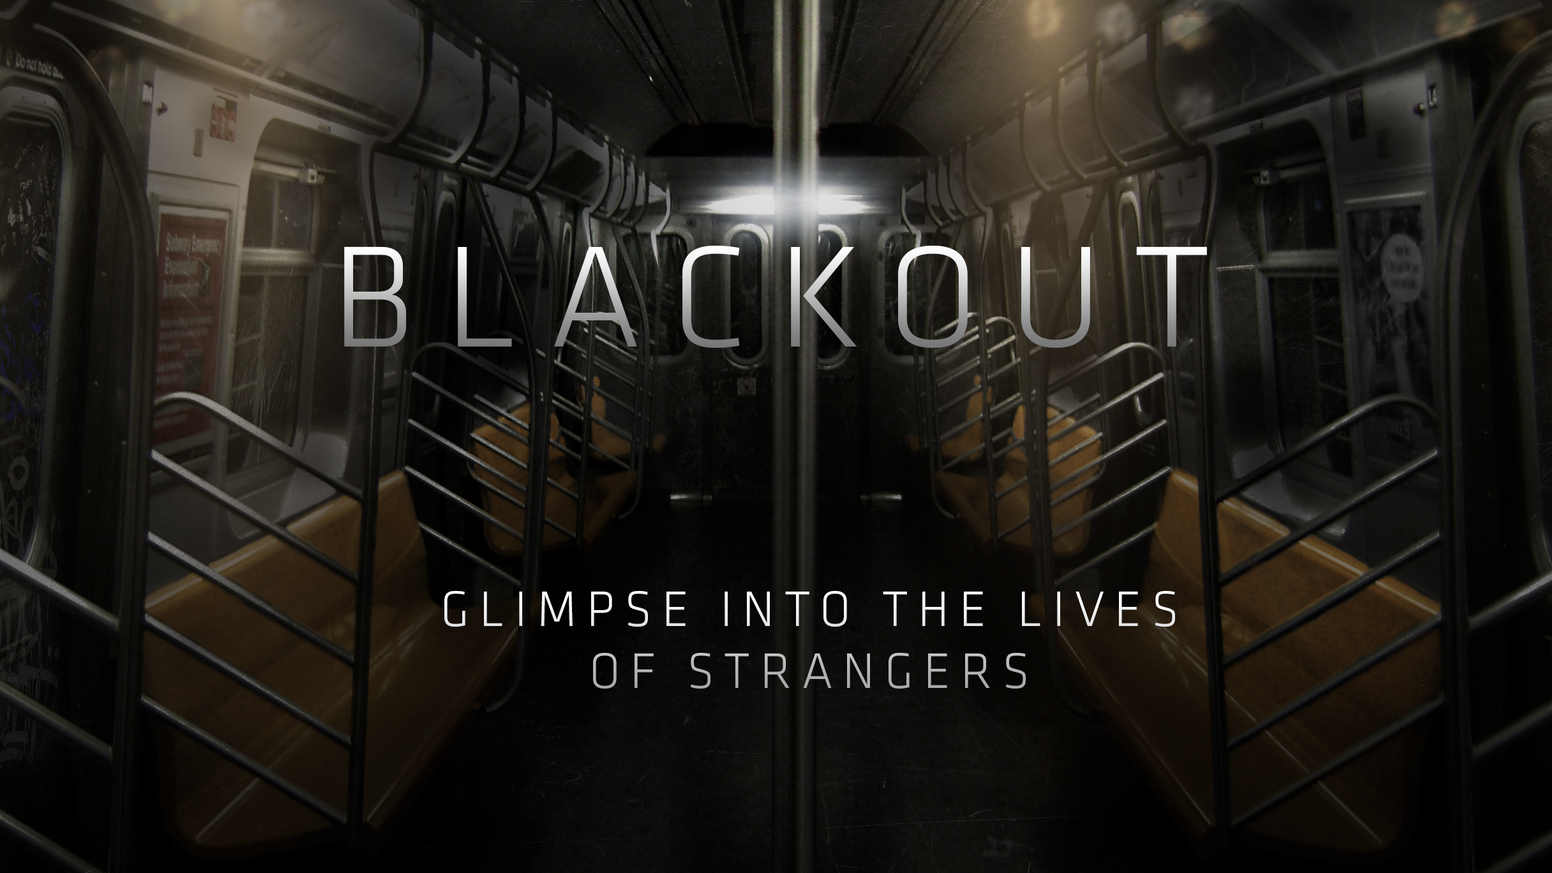 A pioneering virtual reality film transporting you into the memories of strangers on the New York City Subway.